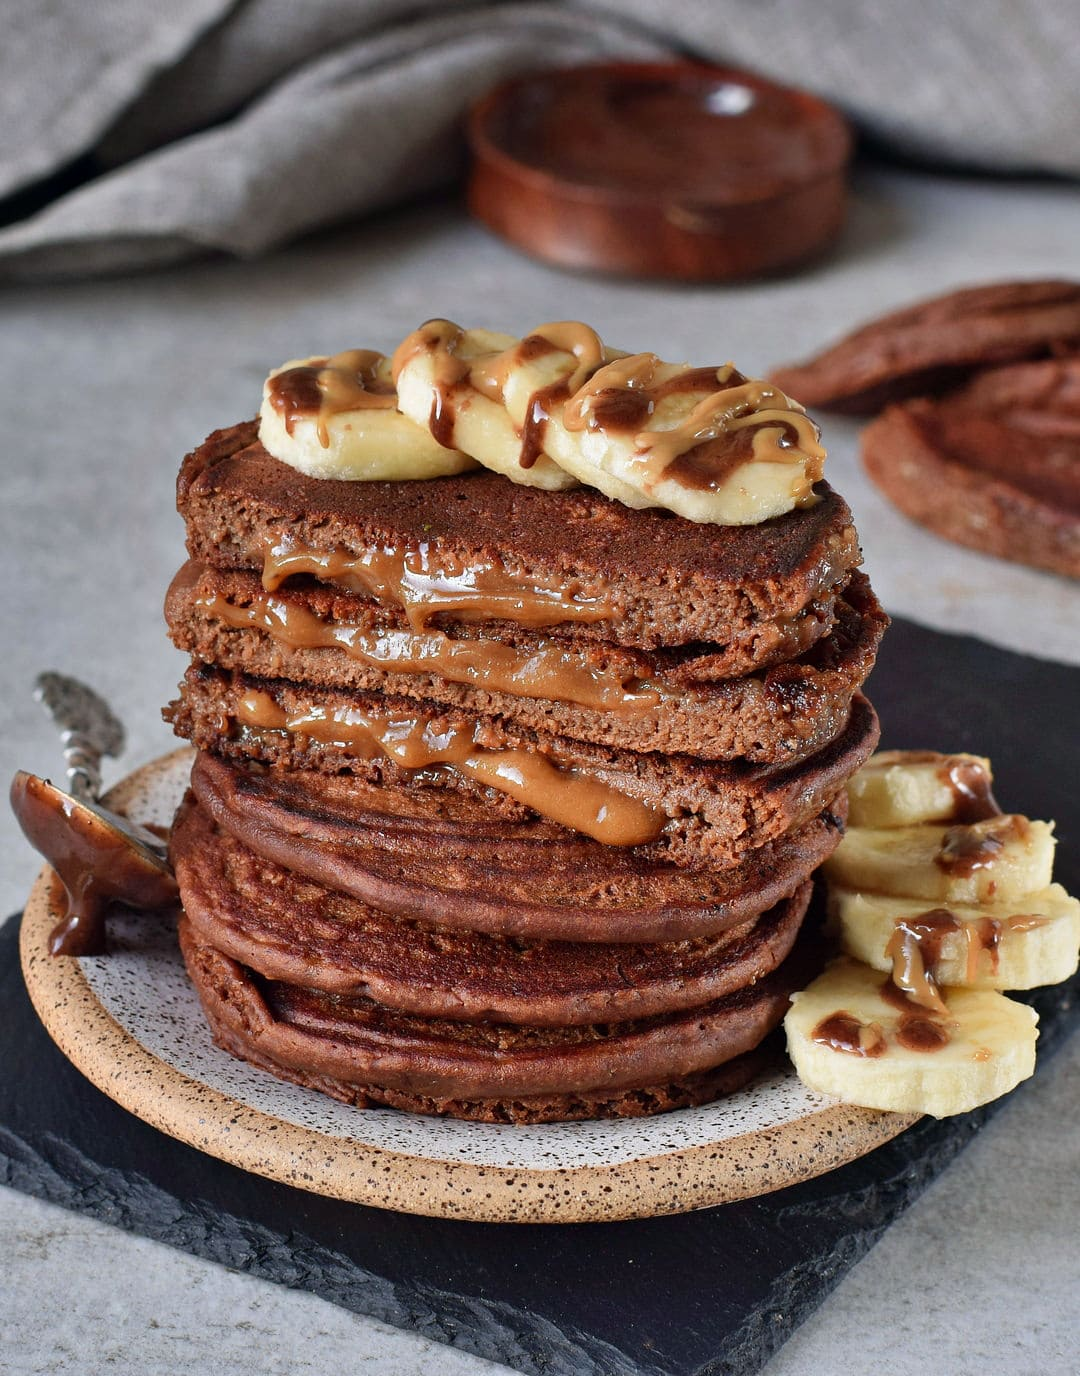 Caramel chocolate pancakes with banana slices vegan recipe